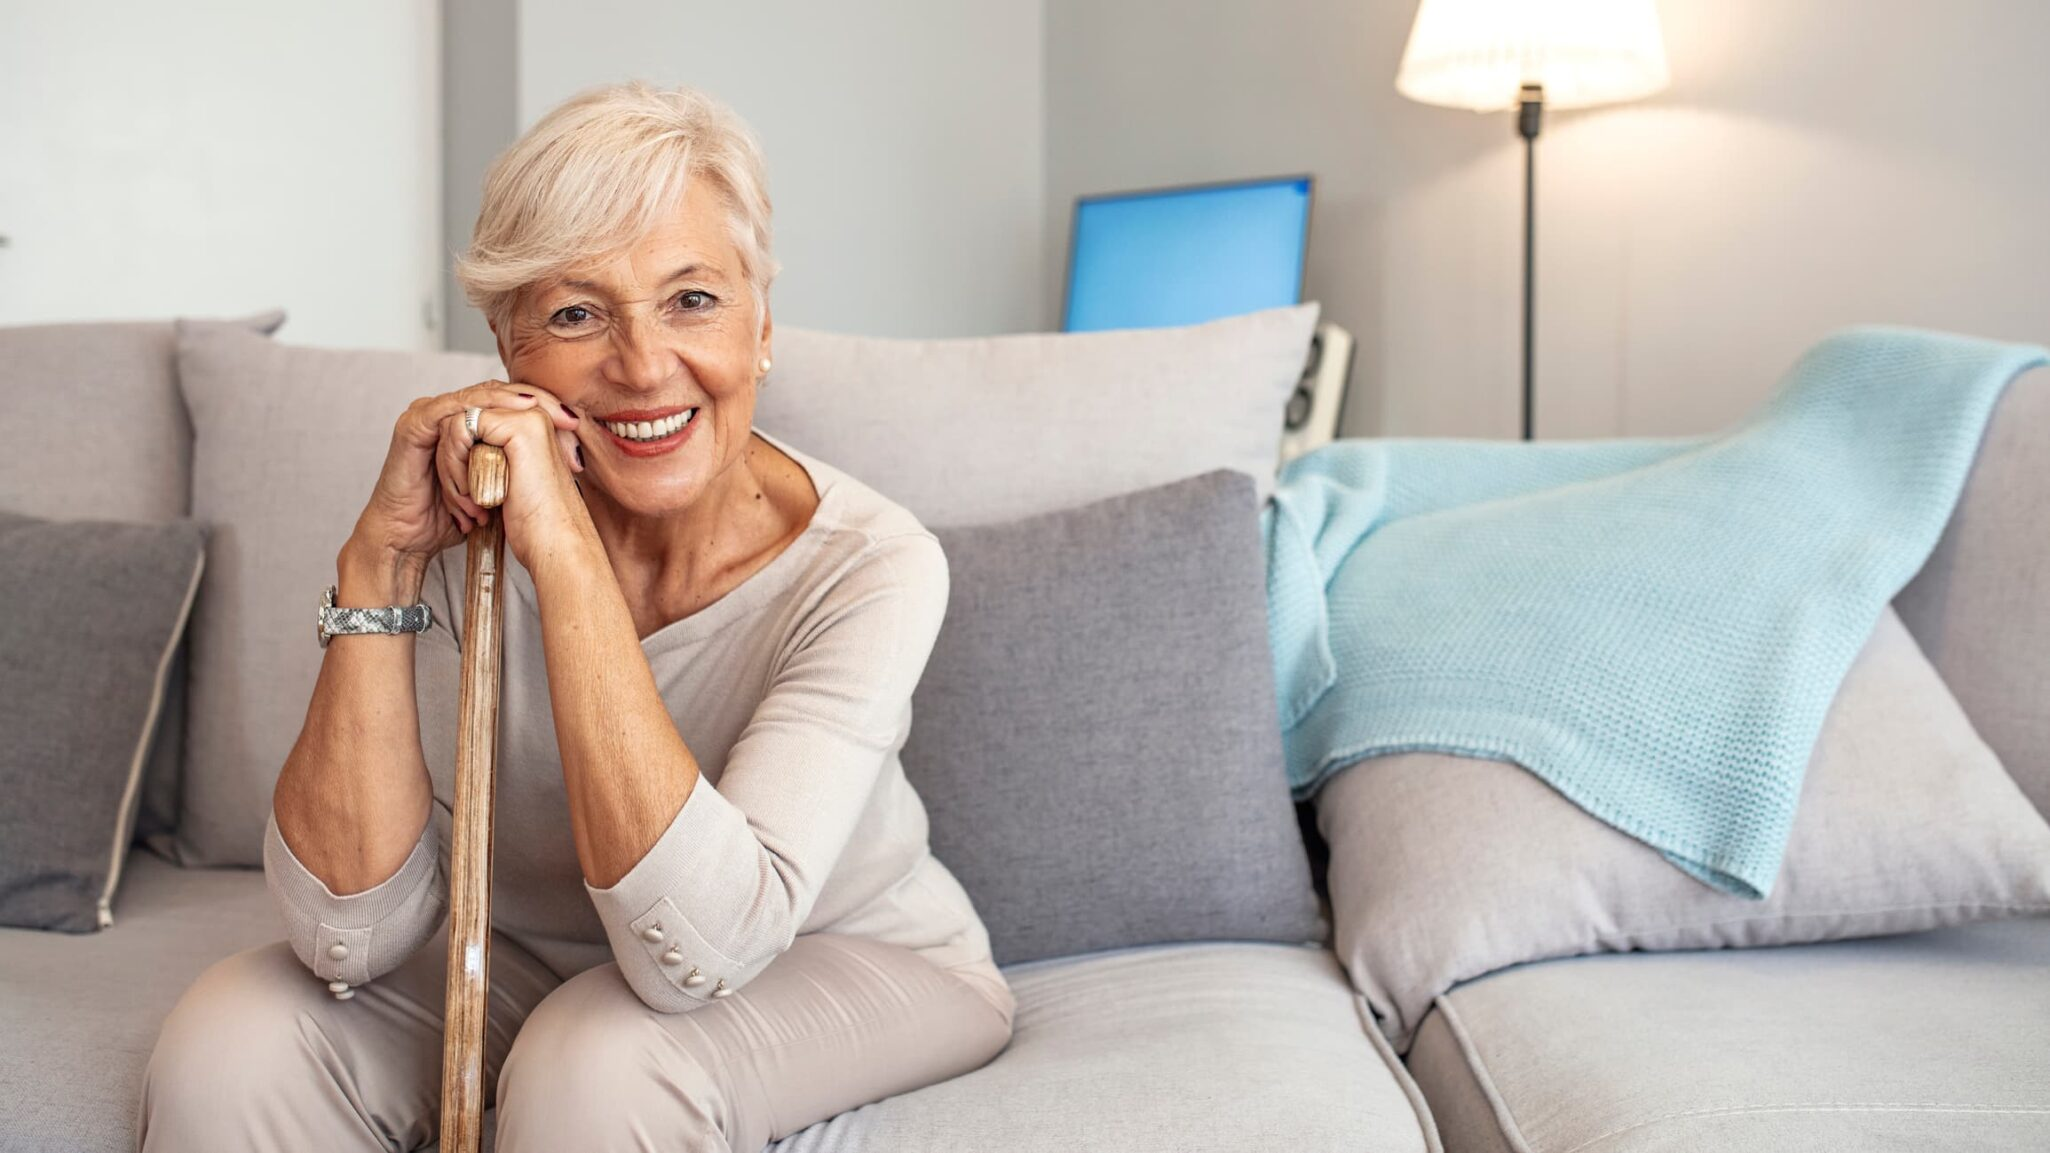 Happy older woman sitting on a couch and resting on a cane.